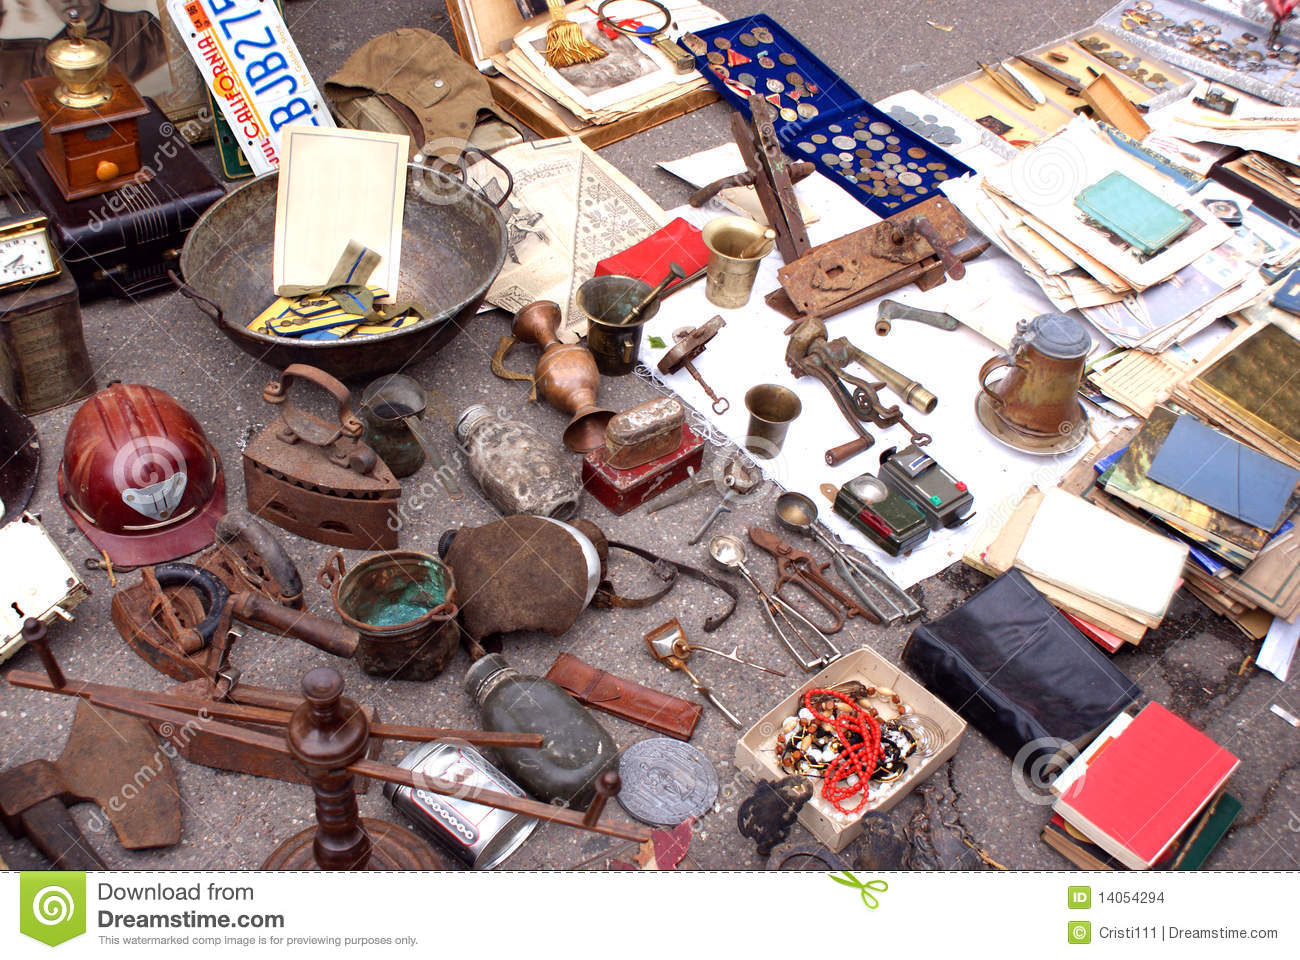 Antiques for sale stock photo. Image of industry, sell - 14054294